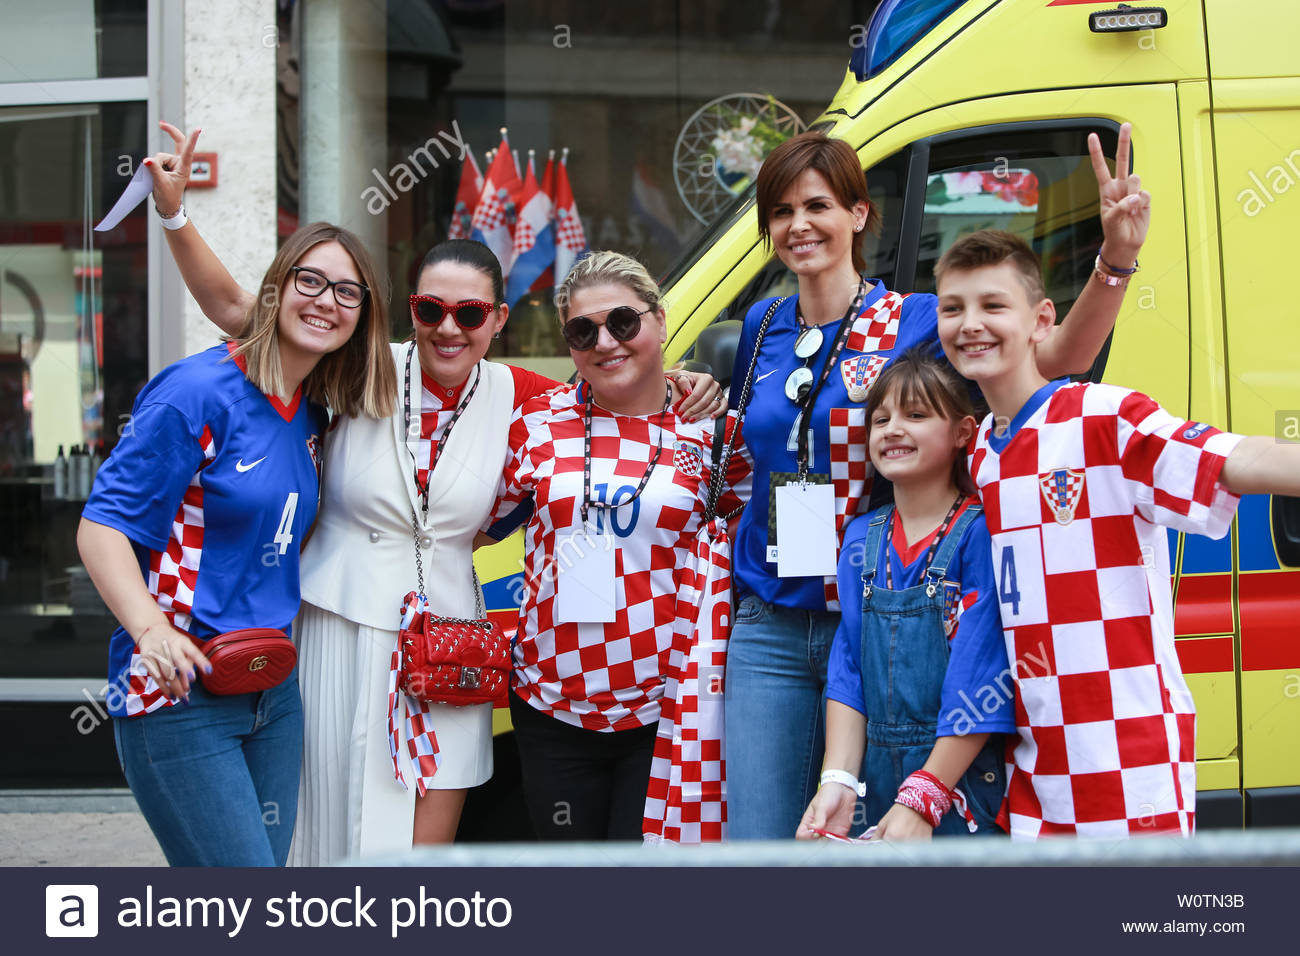 ZAGREB,CROATIA -JULY 16, 2018 : National Team welcome home celebration. Anica Kovac former model known for being the First Runner-up in the Miss World 1995 competition with her kids and friends. - Stock Image